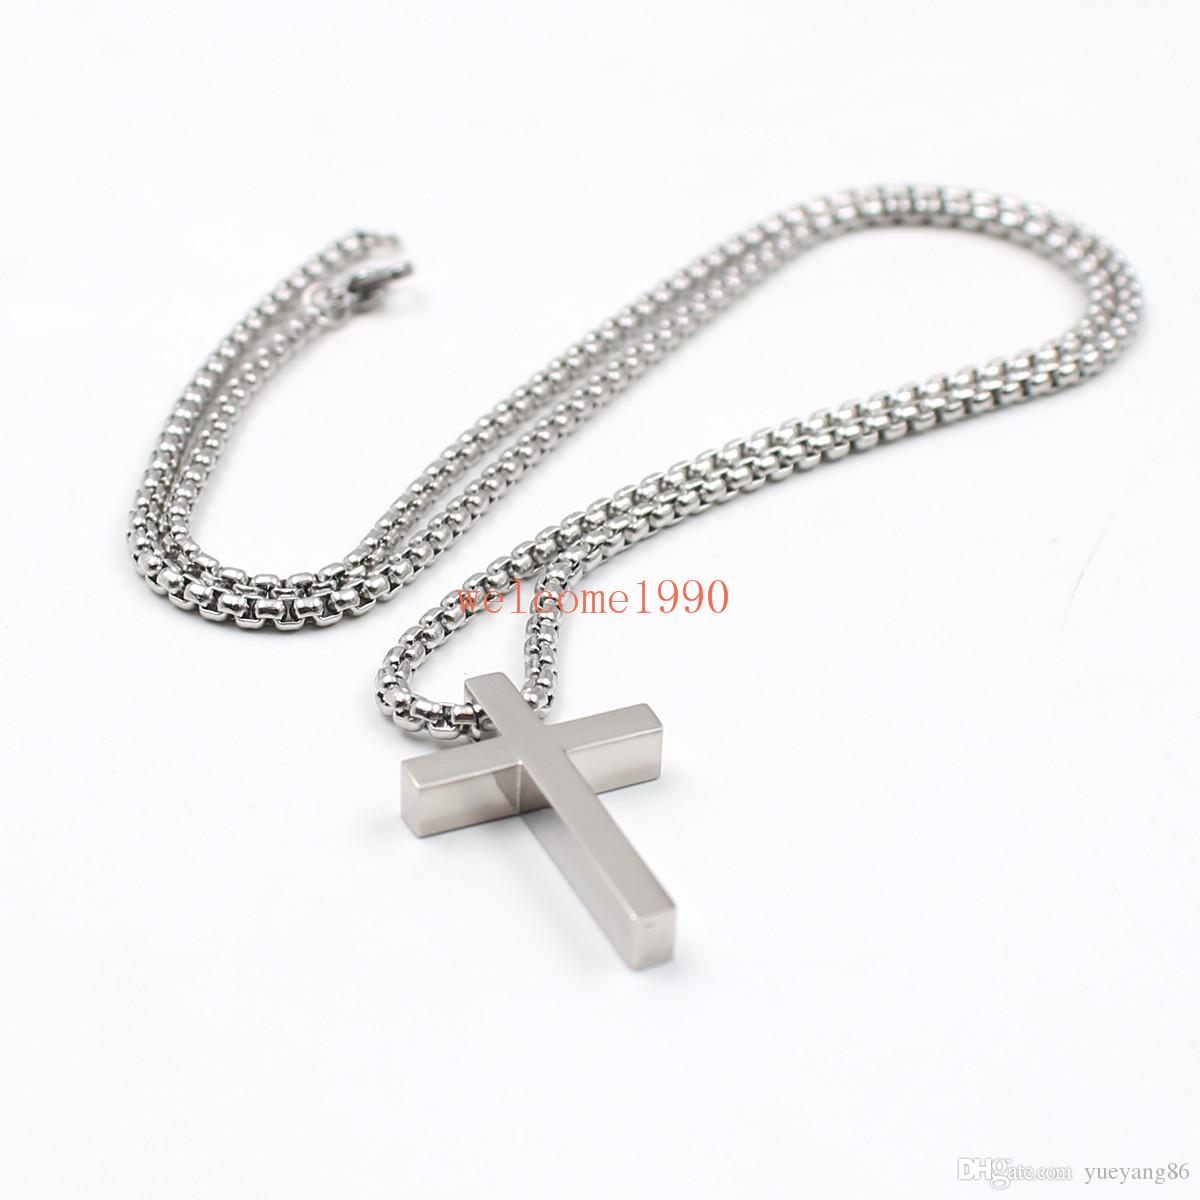 jewelry silver color Stainless Steel Polished huge cross pendant necklace 24 inch 3mm Rolo box chain for women mens XMAS Gifts